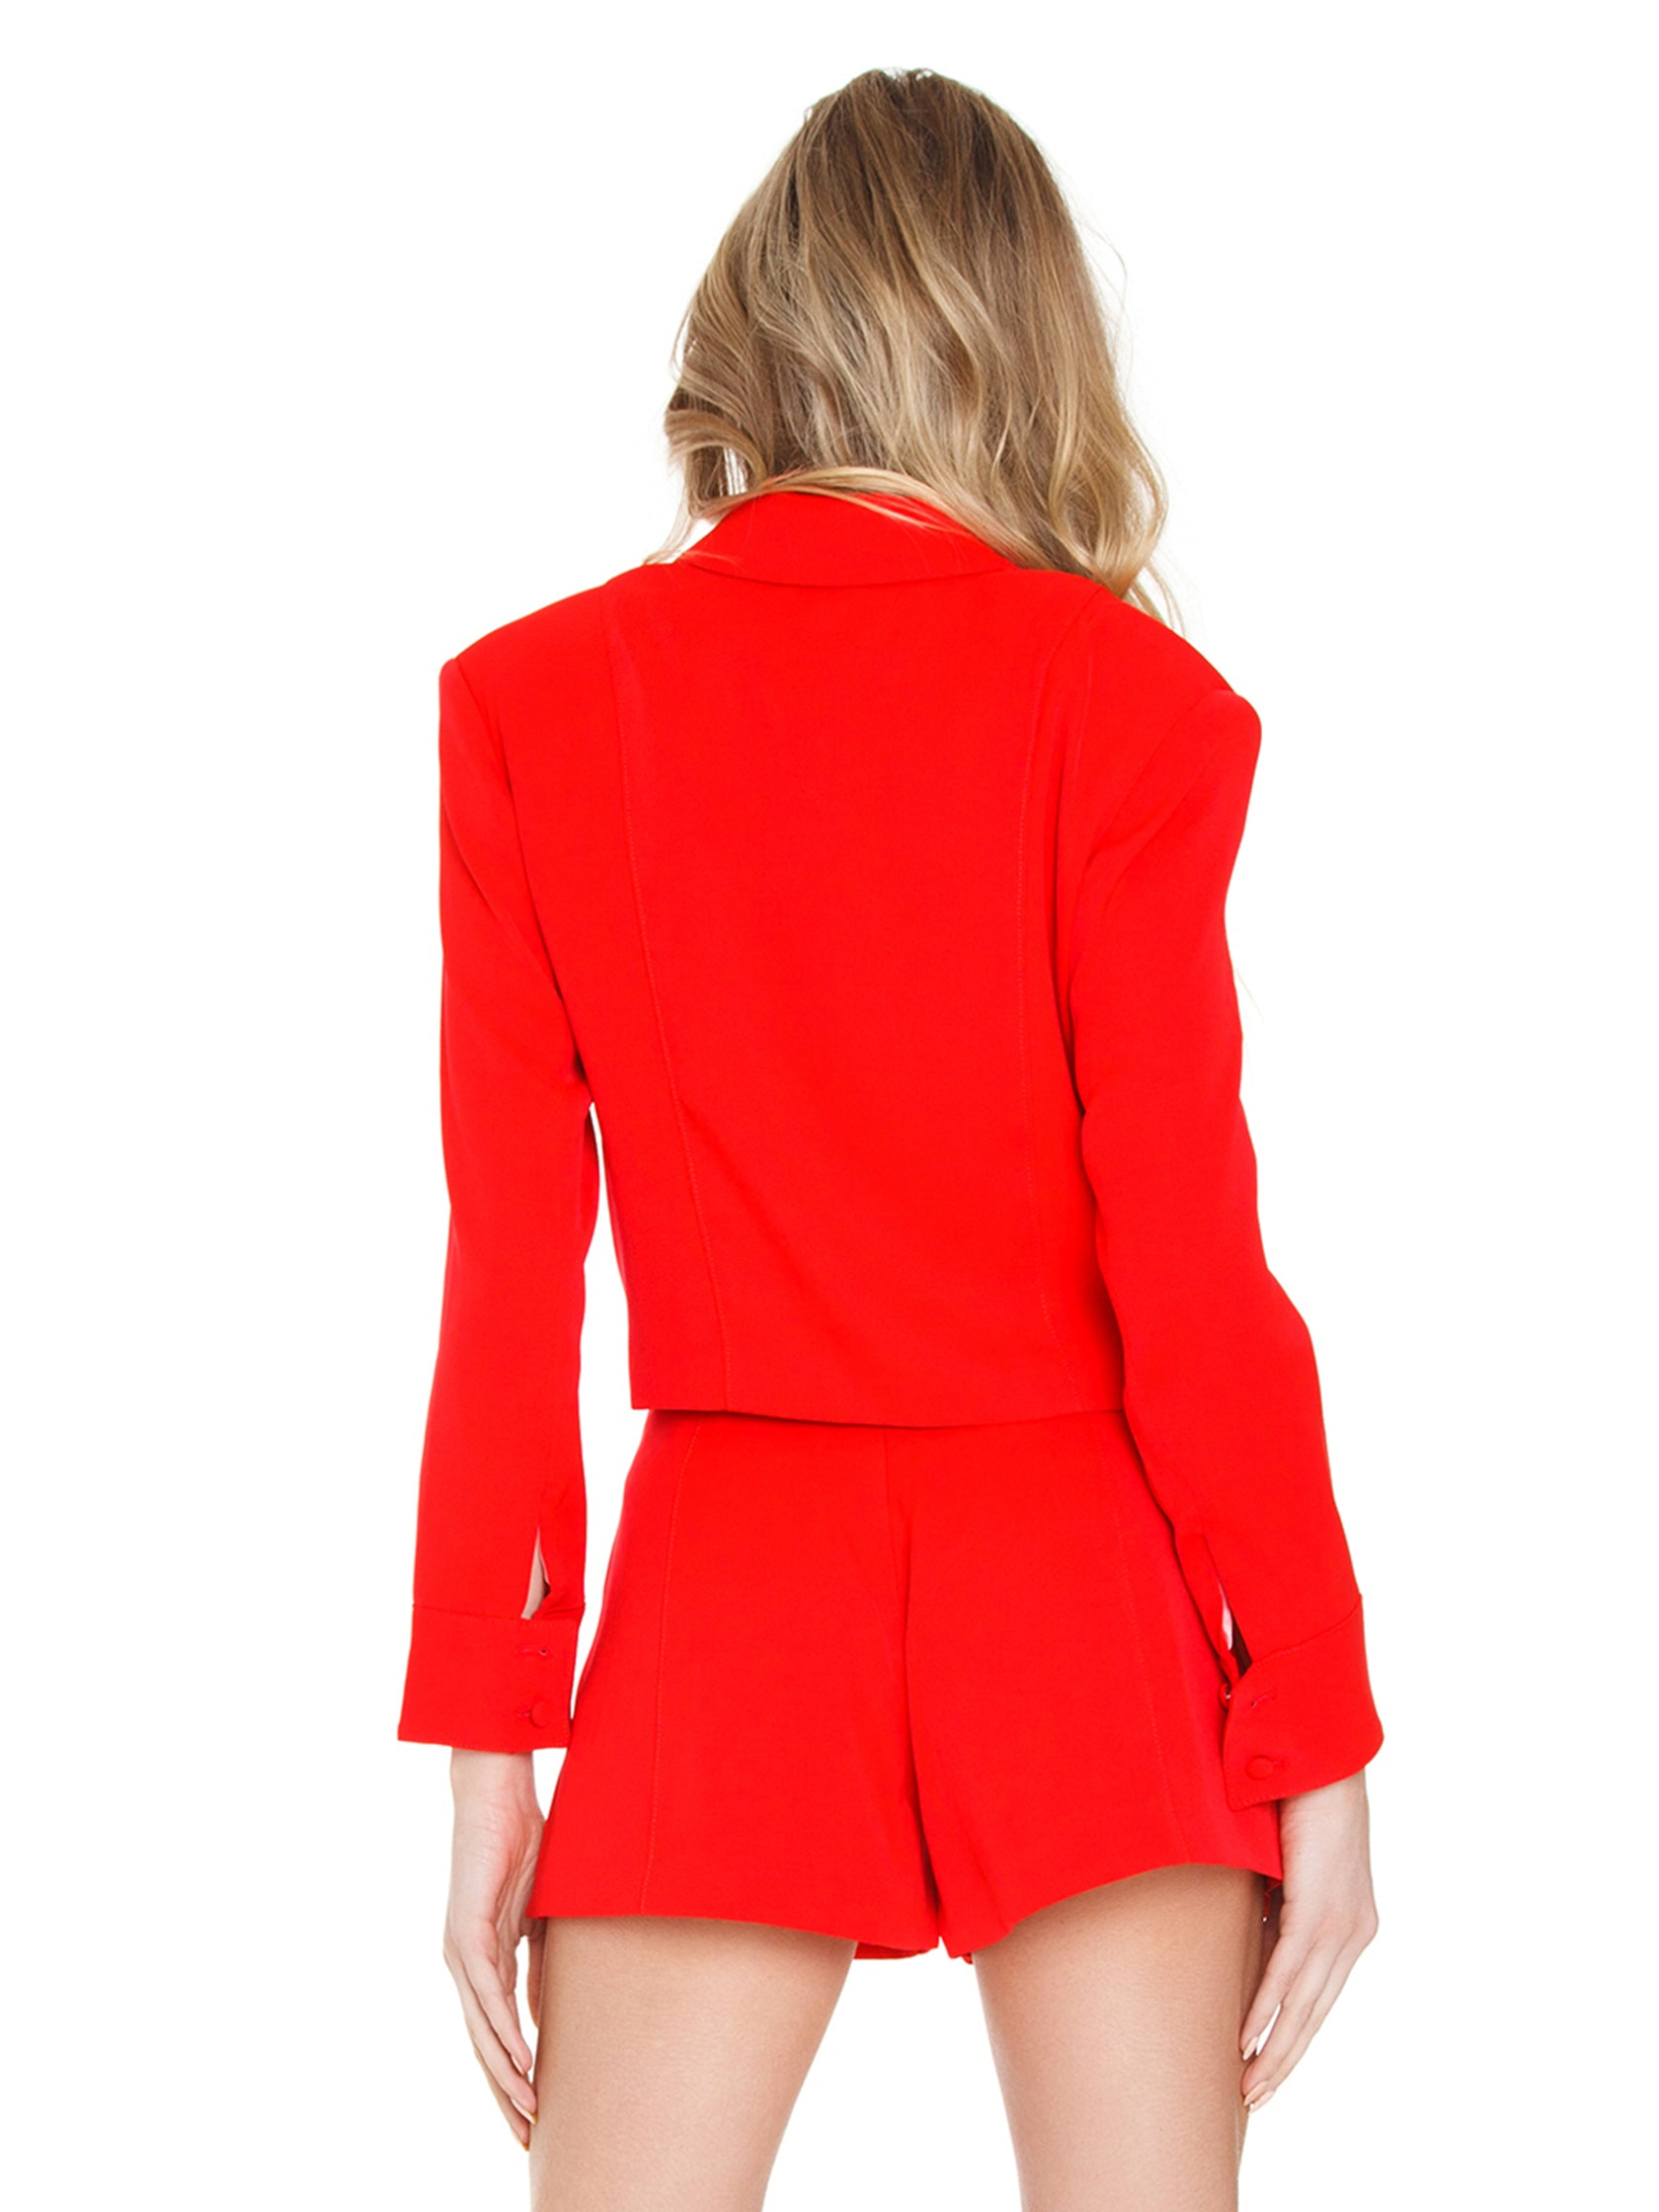 Women outfit in a blazer rental from FLETCH called Brooklyn Crop Jacket